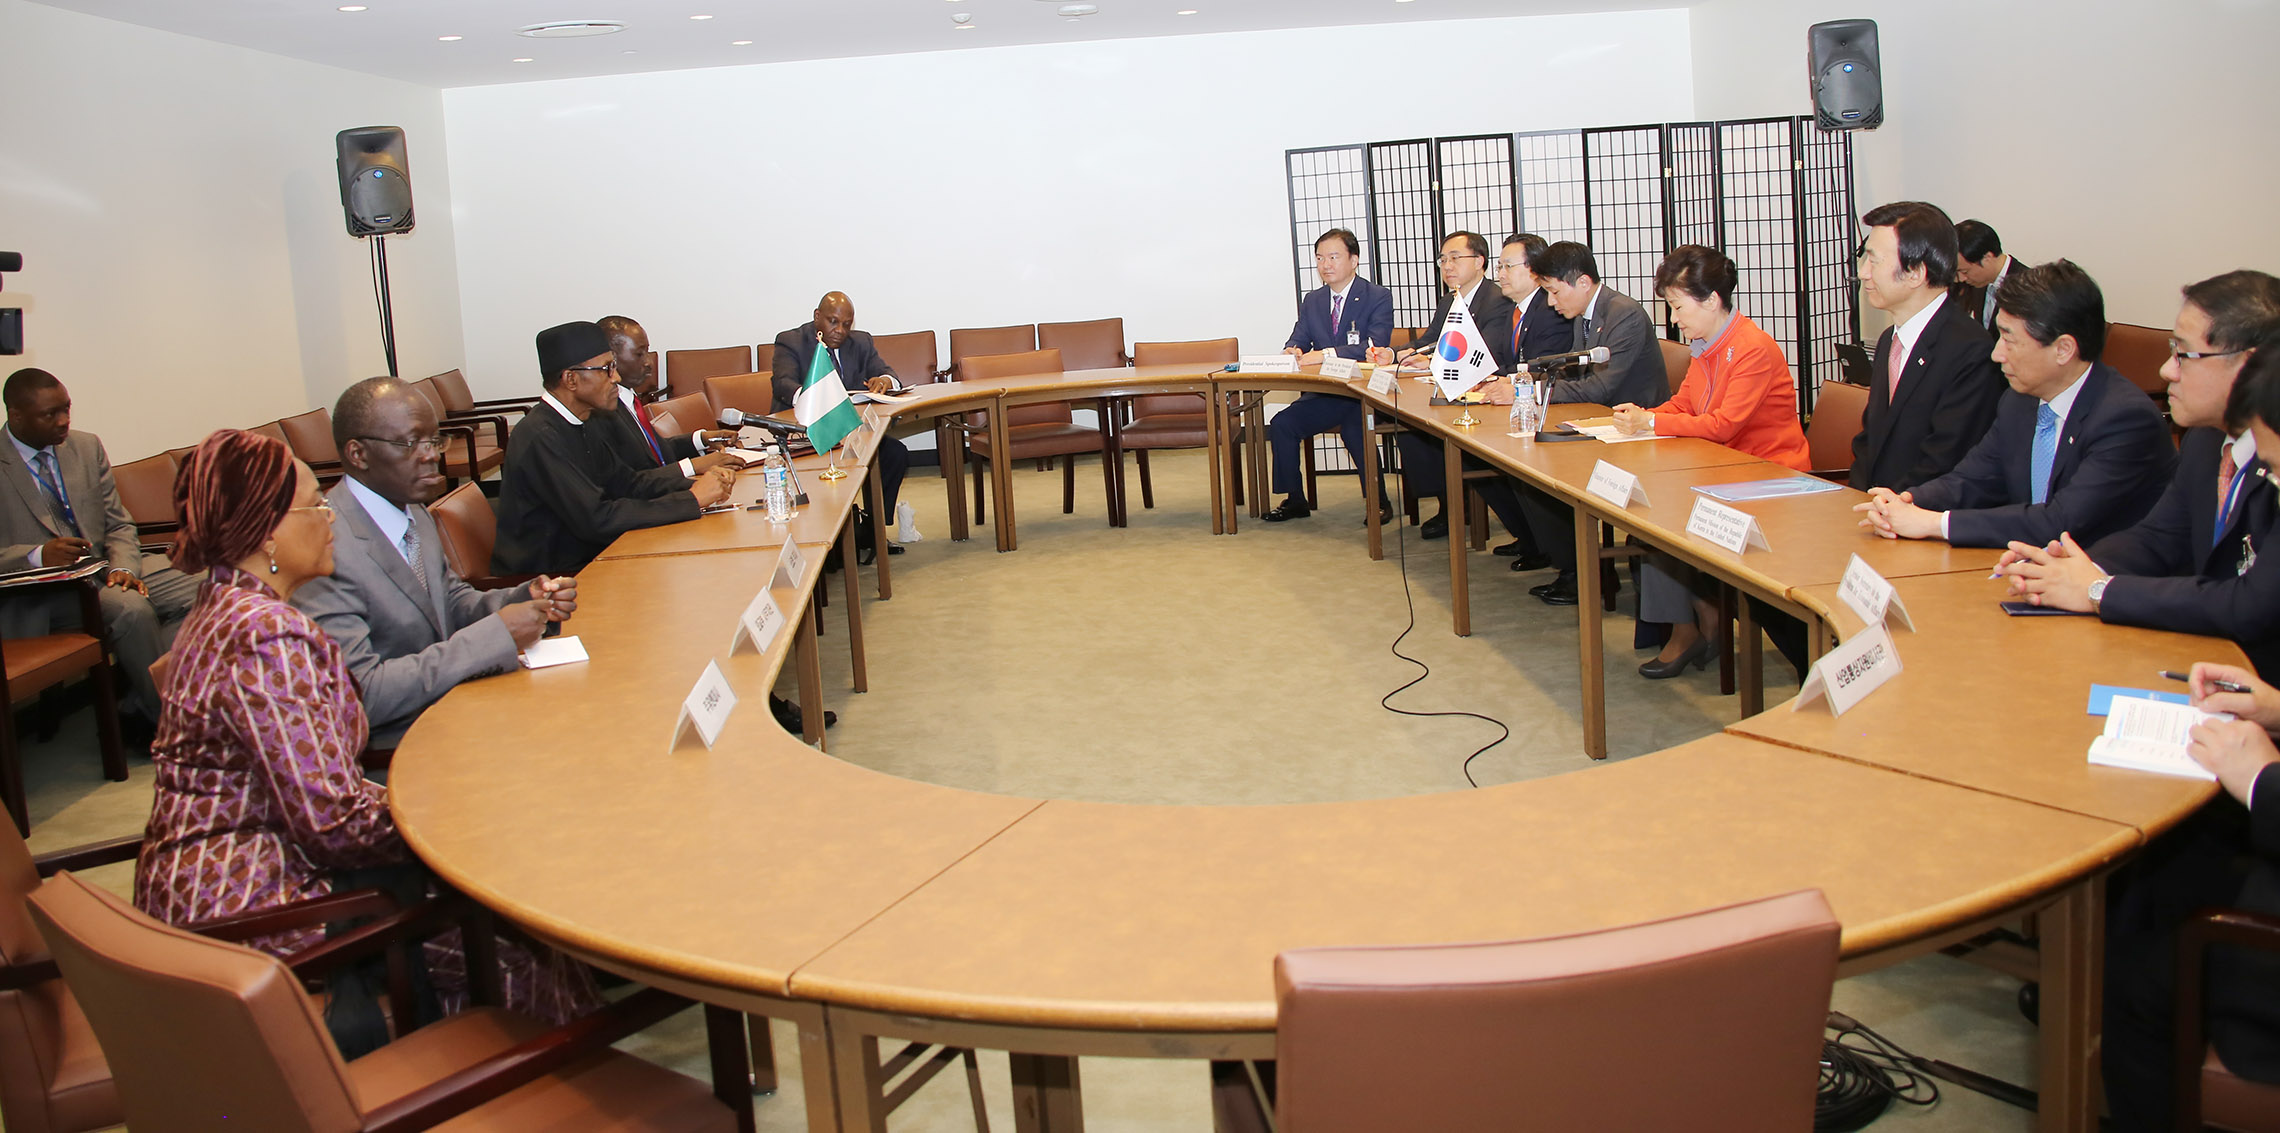 L-R; National Security Adviser, Major General Babagana Monguno, President Muhammadu Buhari, Sokoto State Governor, Rt Hon Aminu Tambuwal, President, Republic of Korea, Her Excellency, Mrs Geun-Hye Park, Nigerian Permanent Representatives, Prof Joy Ogwu and the Permanent Secretary Ministry of foreign Affairs, Ambassador Bulus Z. Lolo after a bilateral meeting during the 70th Session of the UN General Assembly in NEW YORK. . SEPT 27 2015